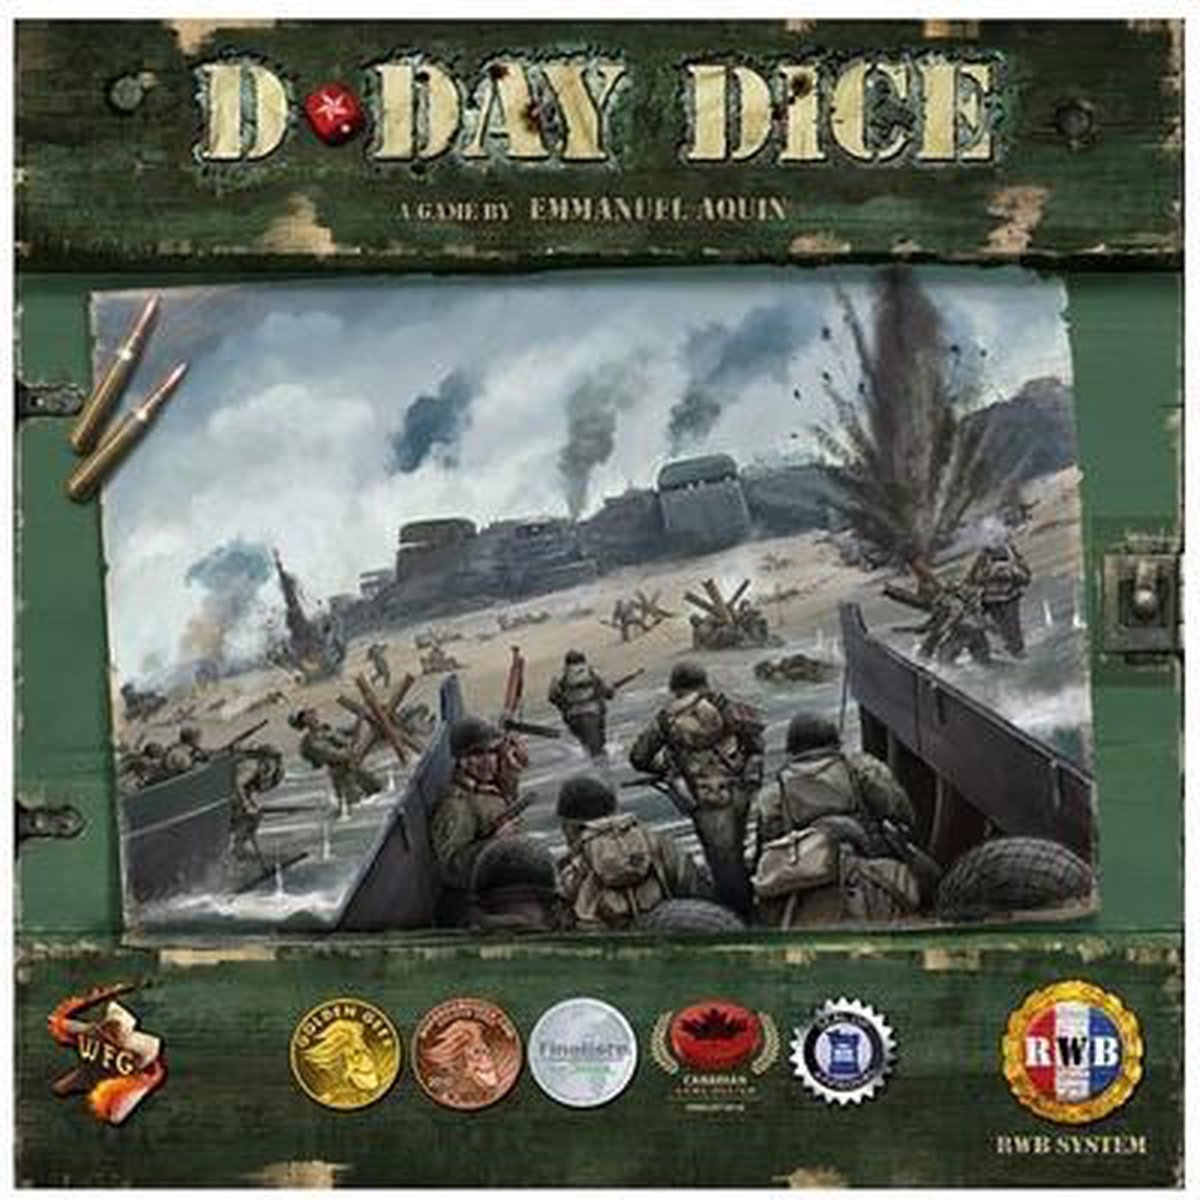 D-Day Dice (2nd Edition, Boxed Game)